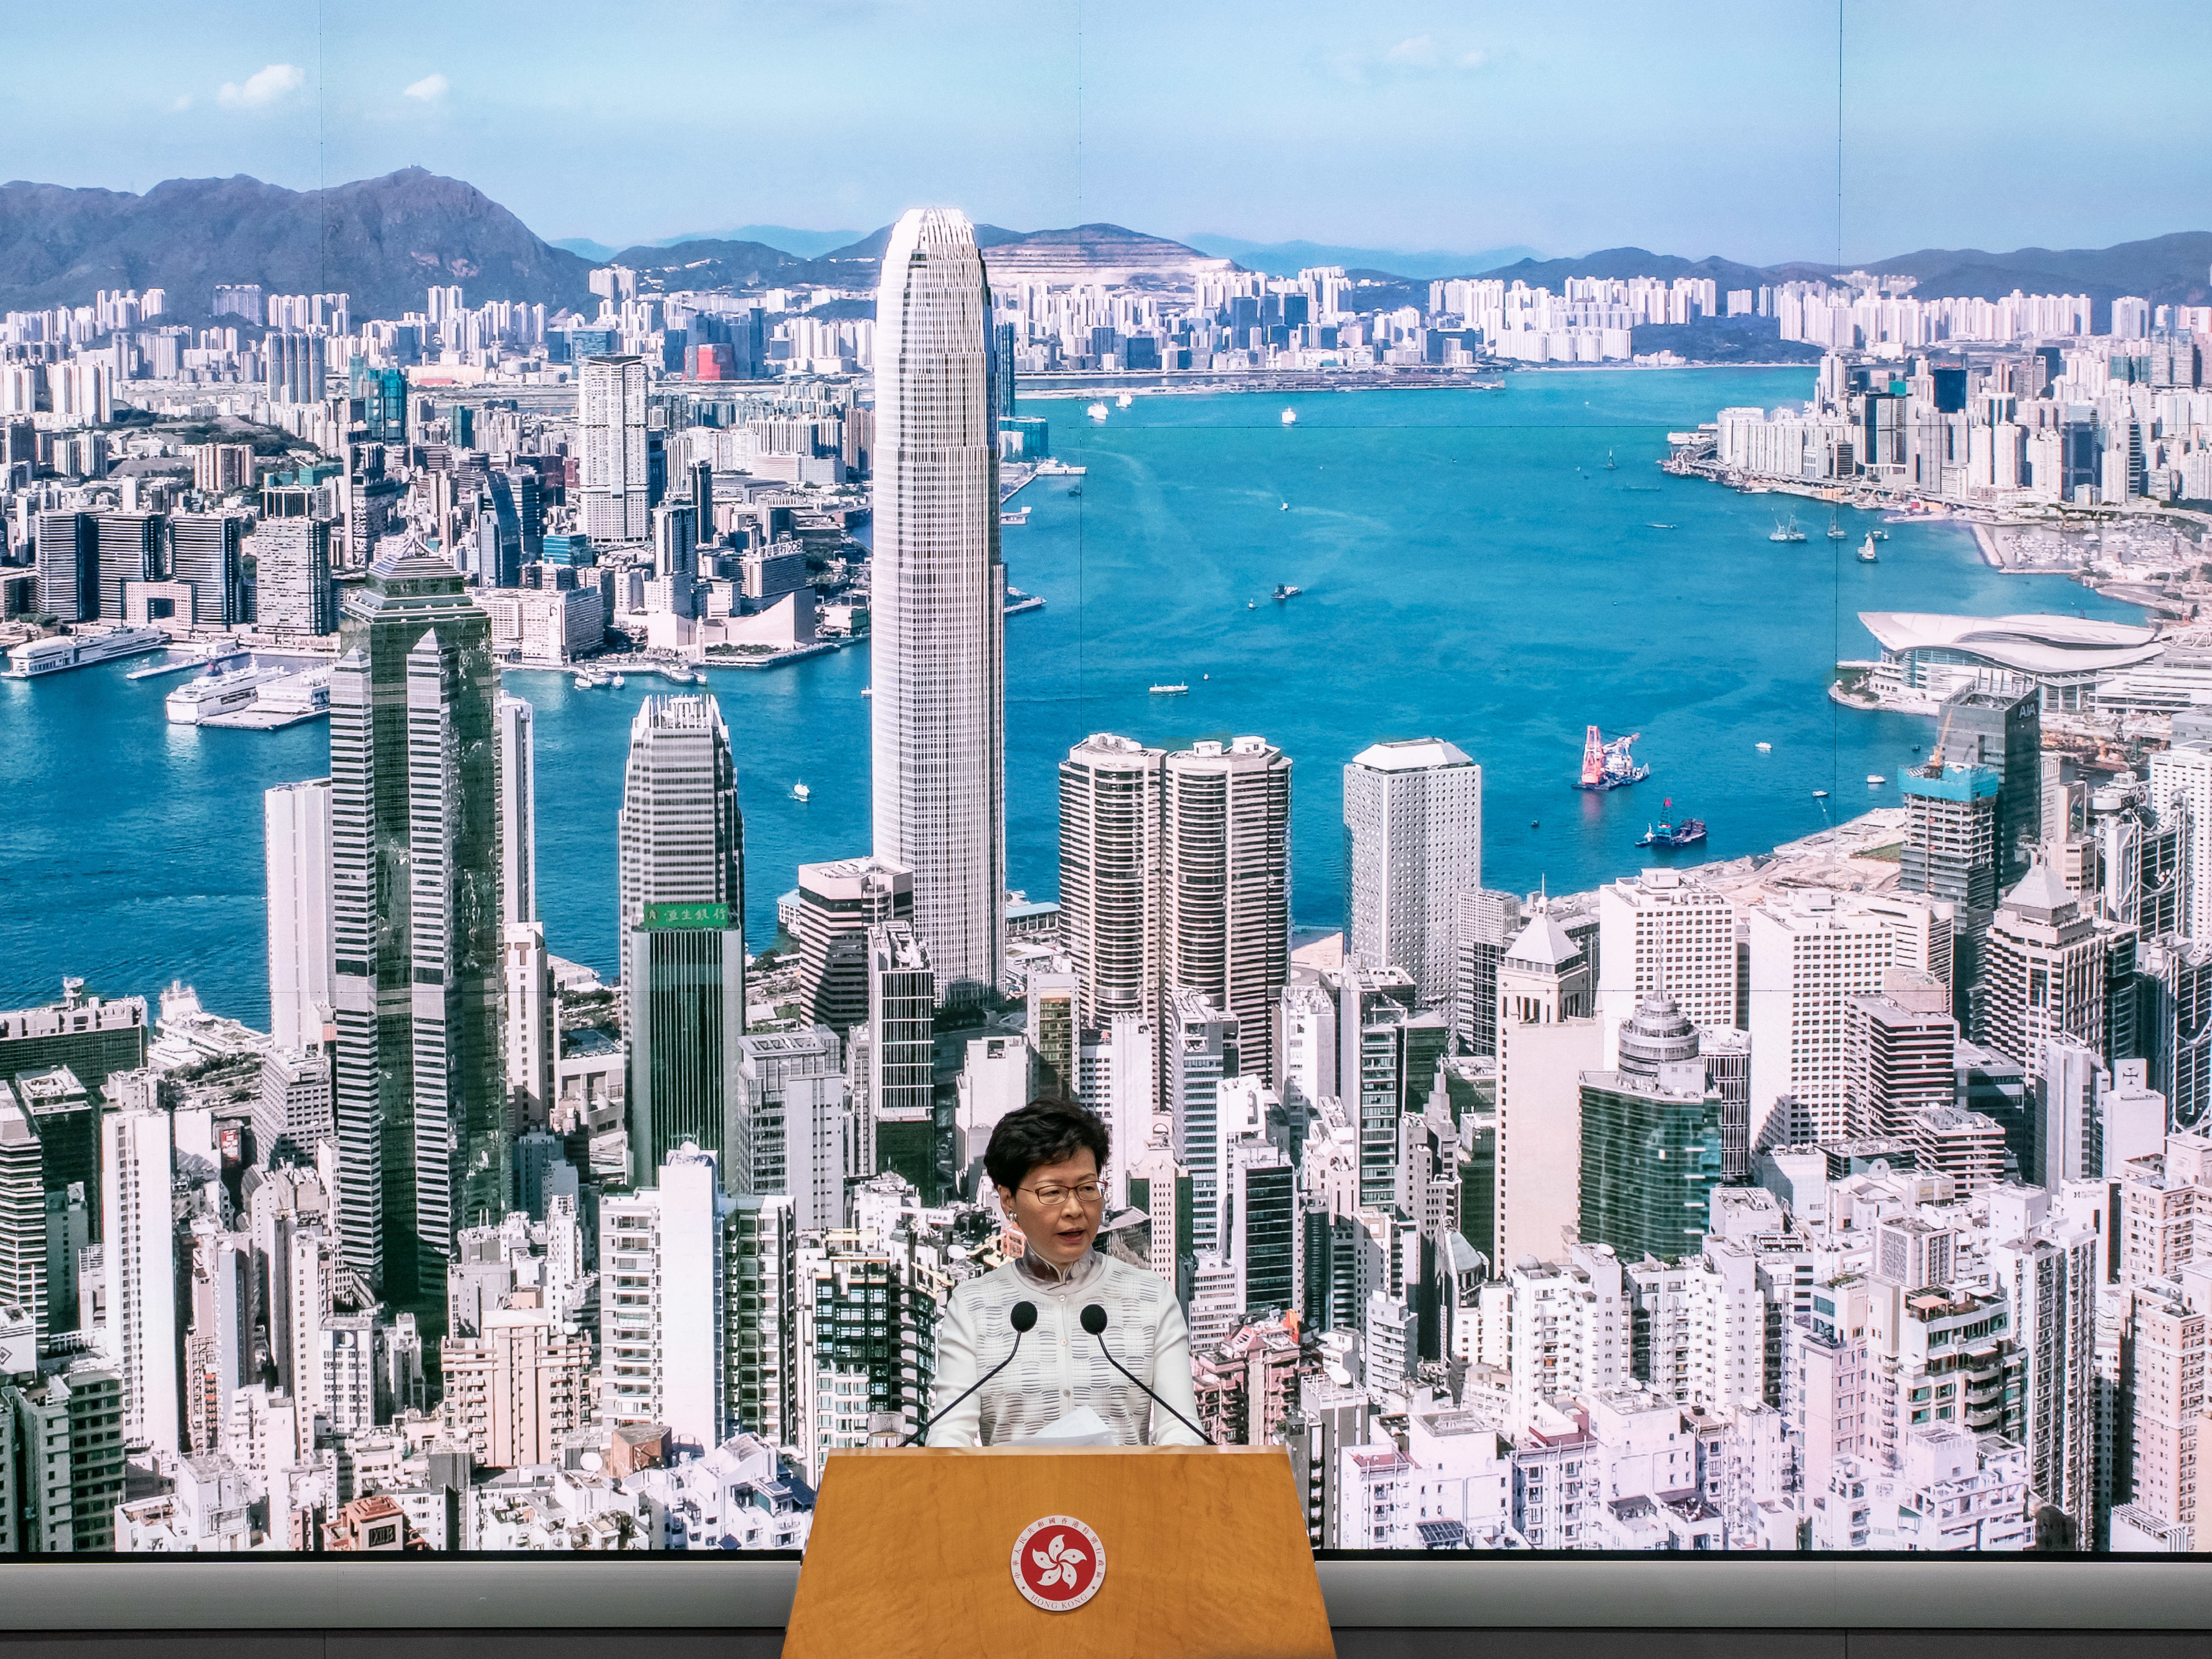 Carrie Lam, Hong Kong's chief executive, speaks at a news conference on June 15.